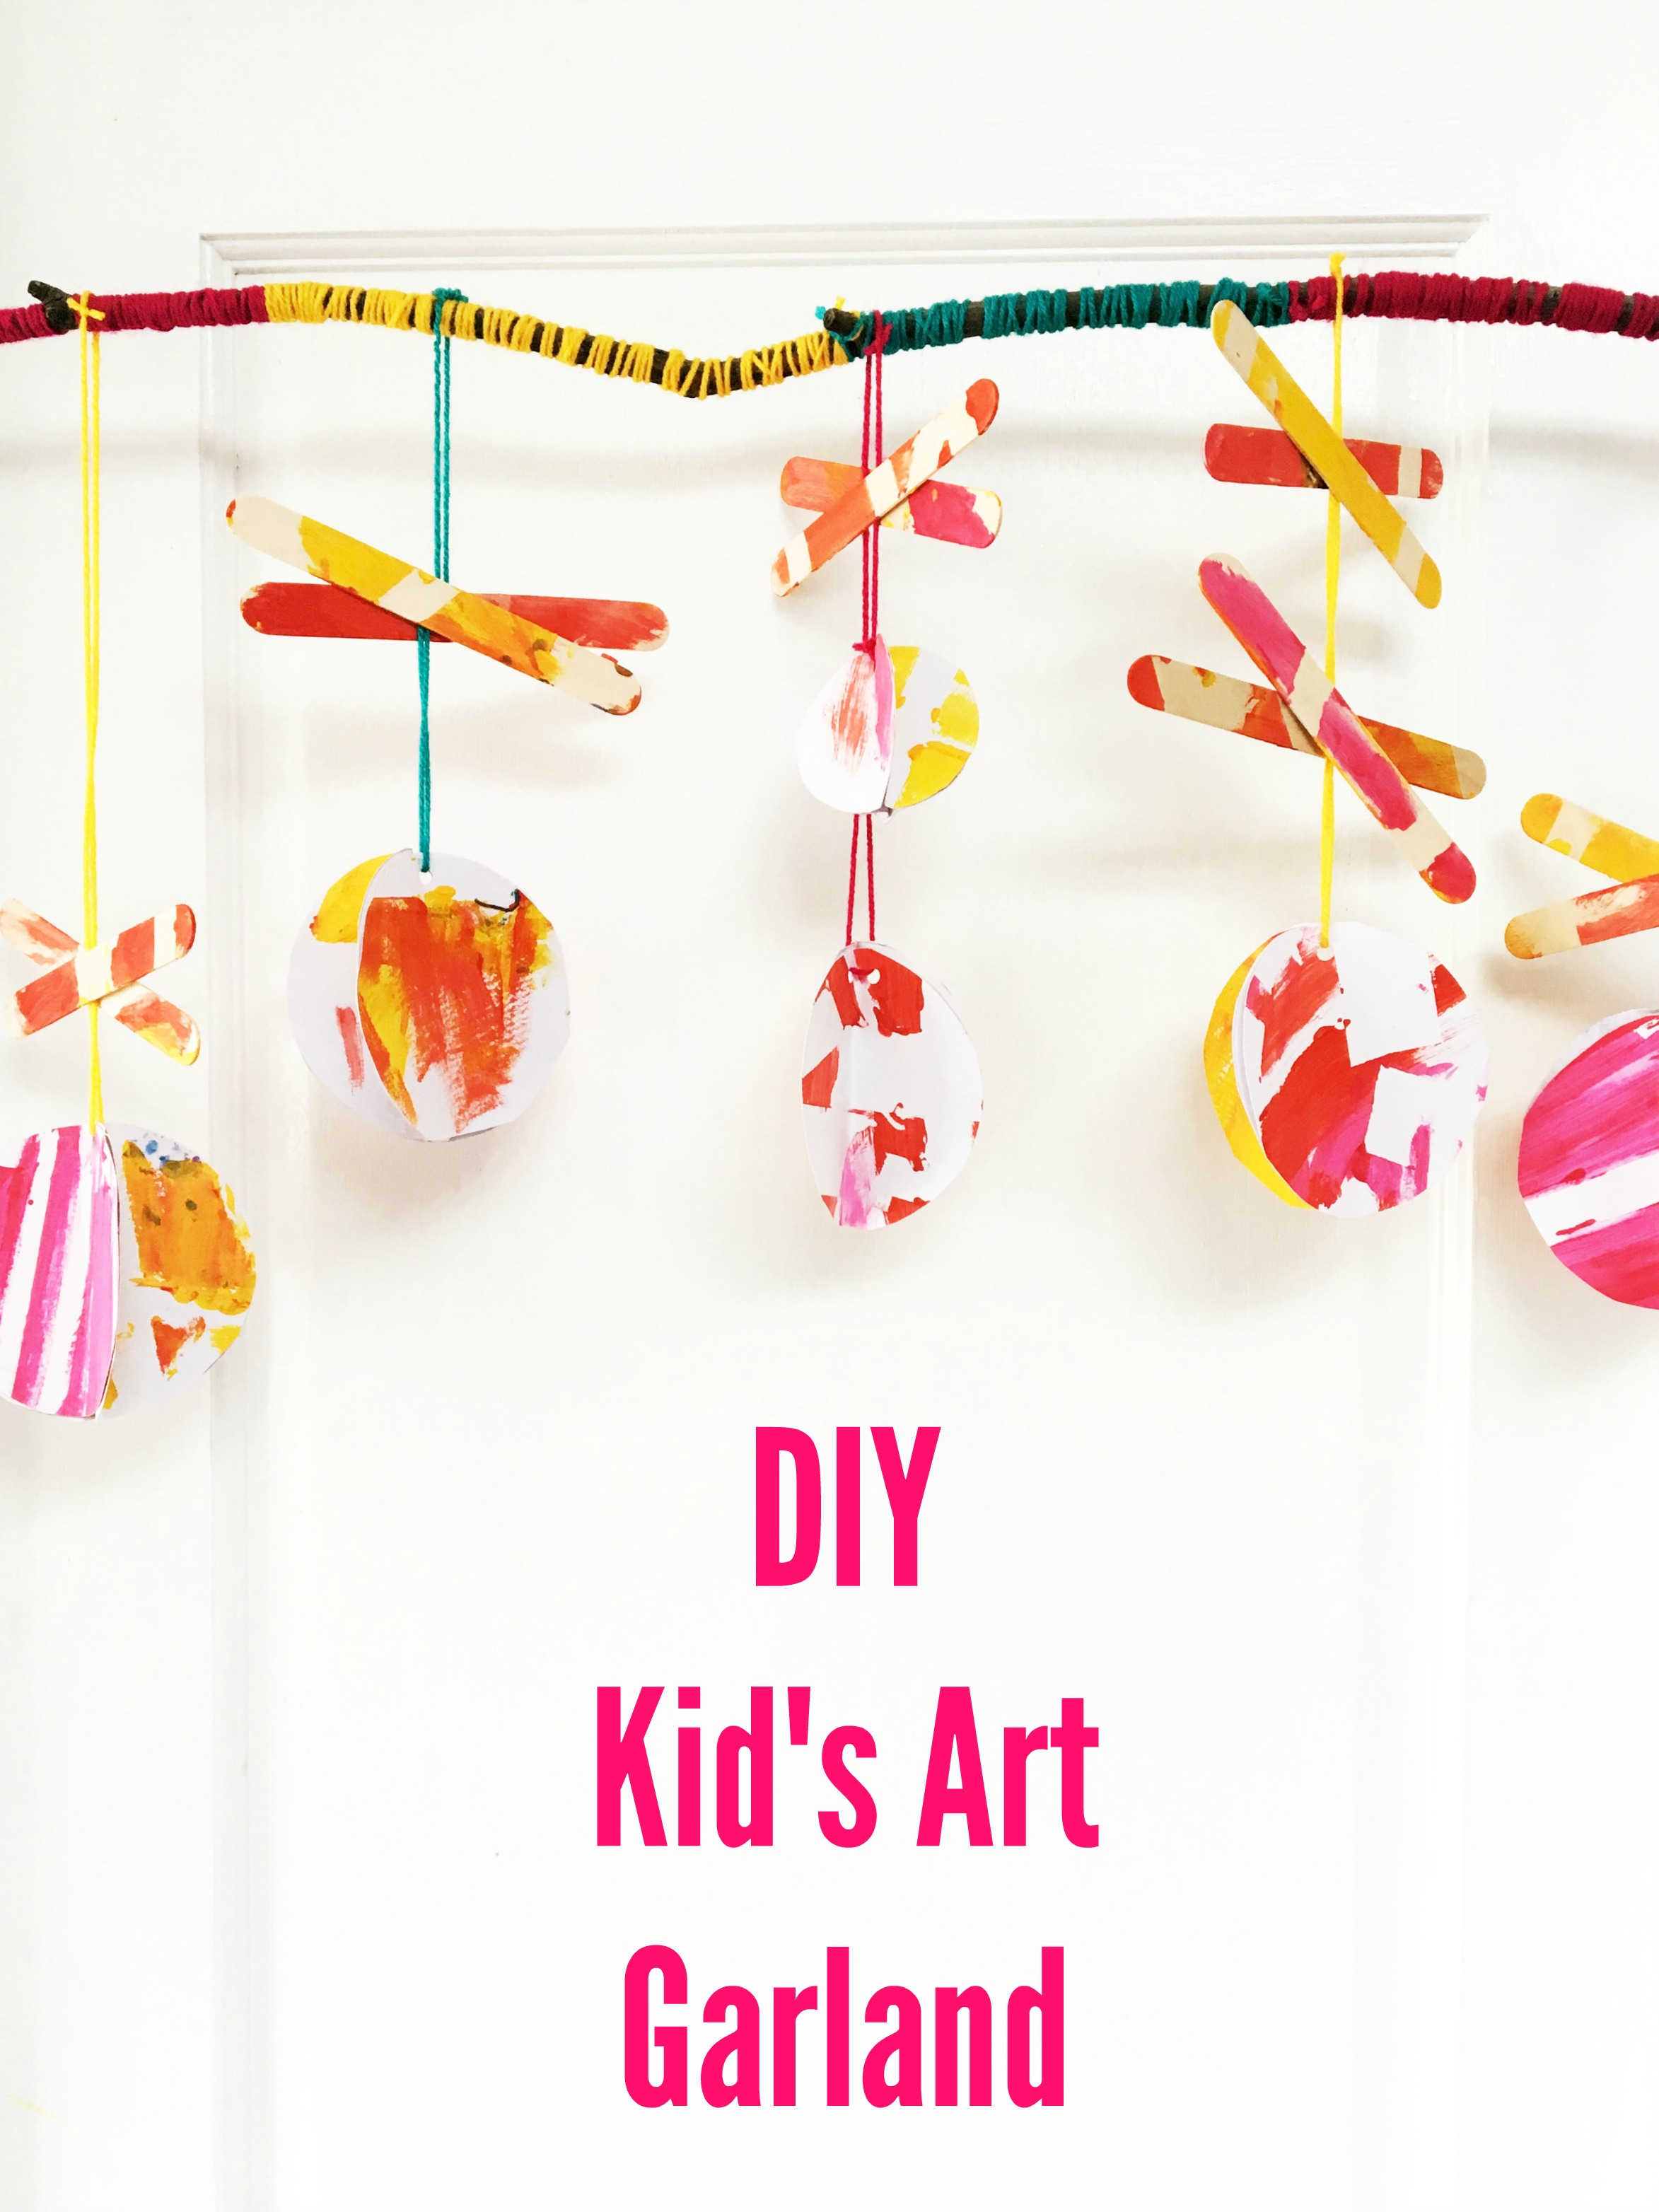 DIY Kid's Art Garland using craft sticks and paint